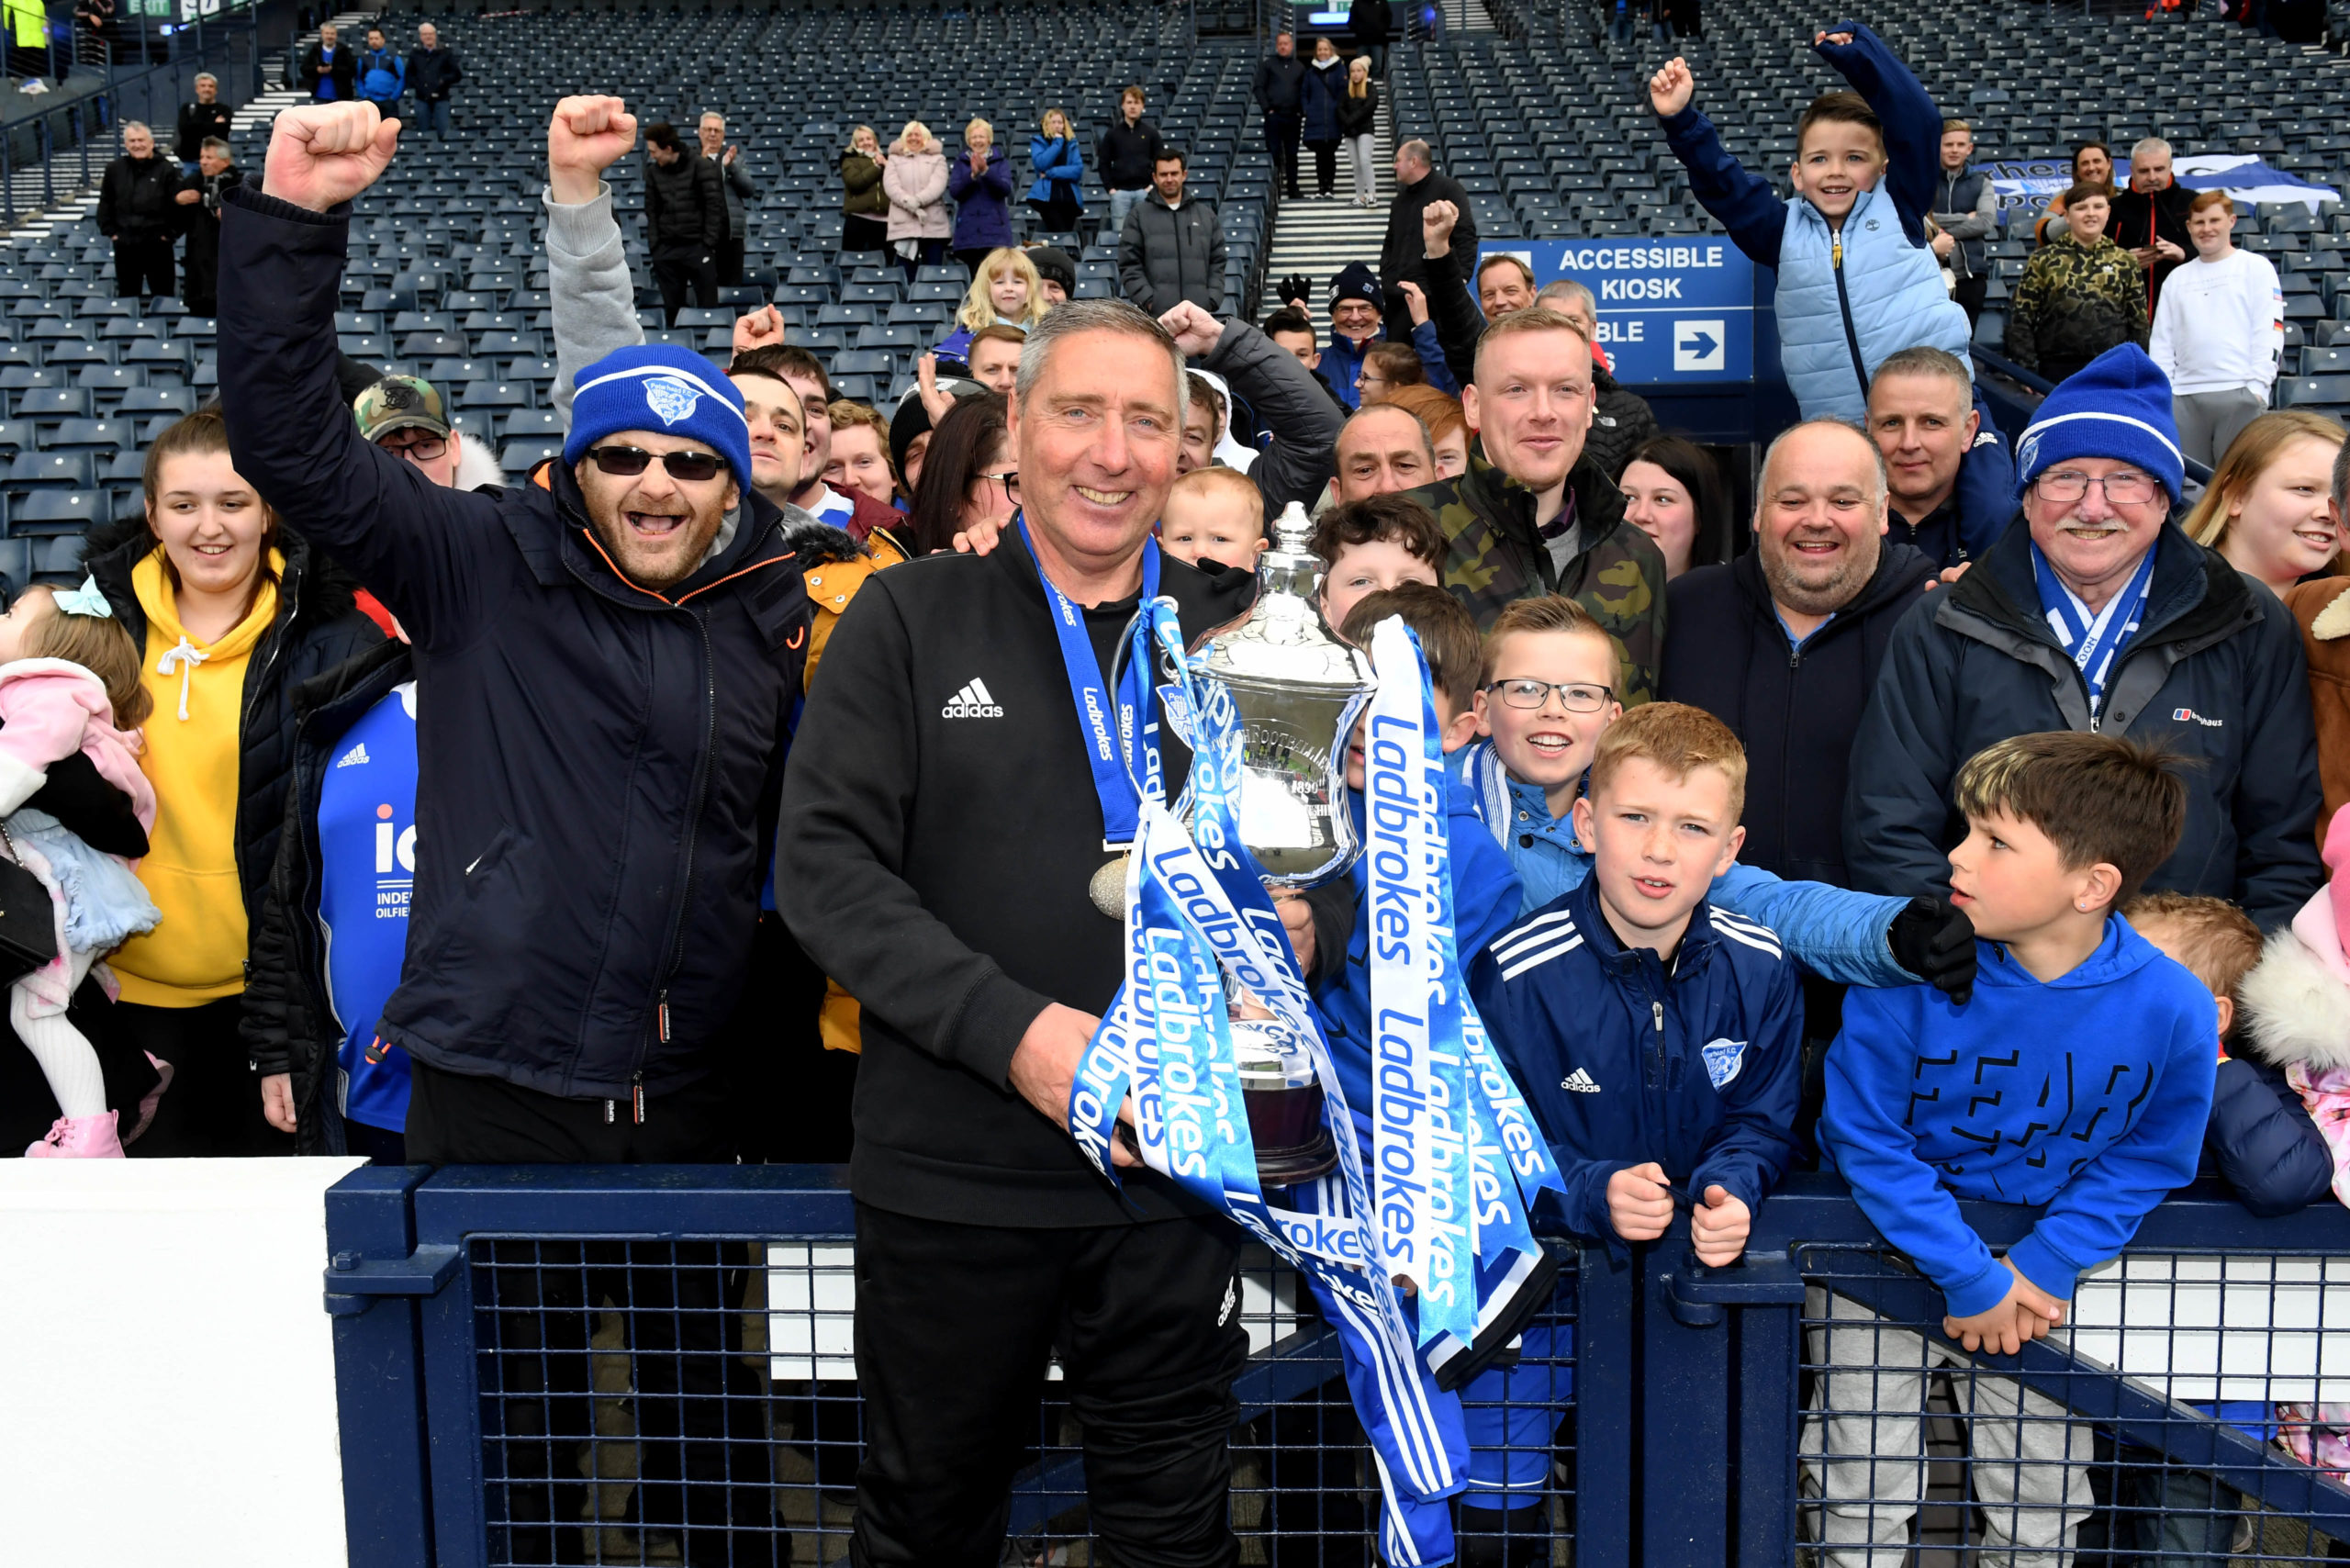 Peterhead manager Jim McInally celebrates with the Ladbrokes League 2 trophy and fans in 2019.